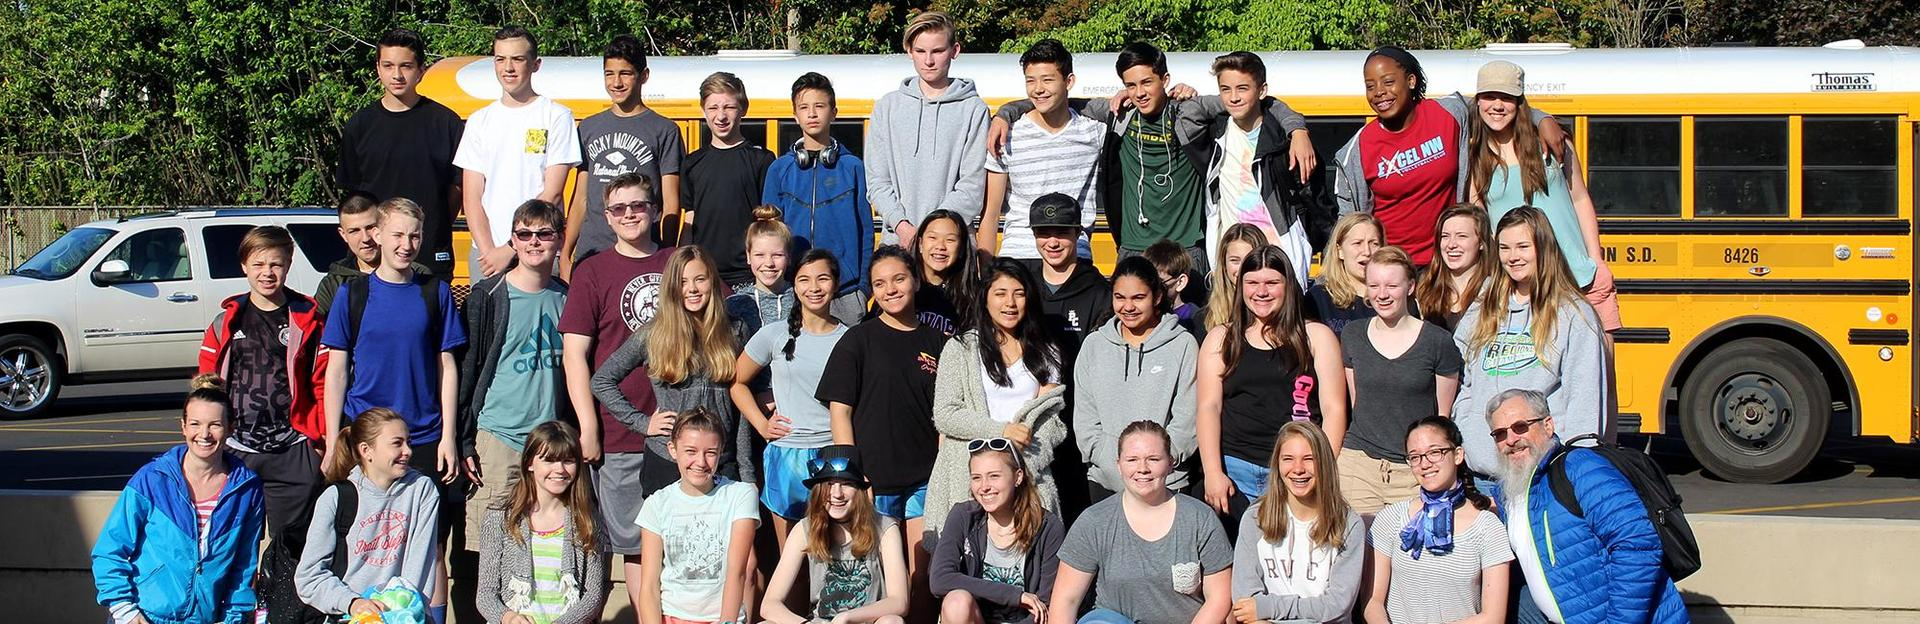 8th graders in spring 2018 to Kah-Na-Tee day trip